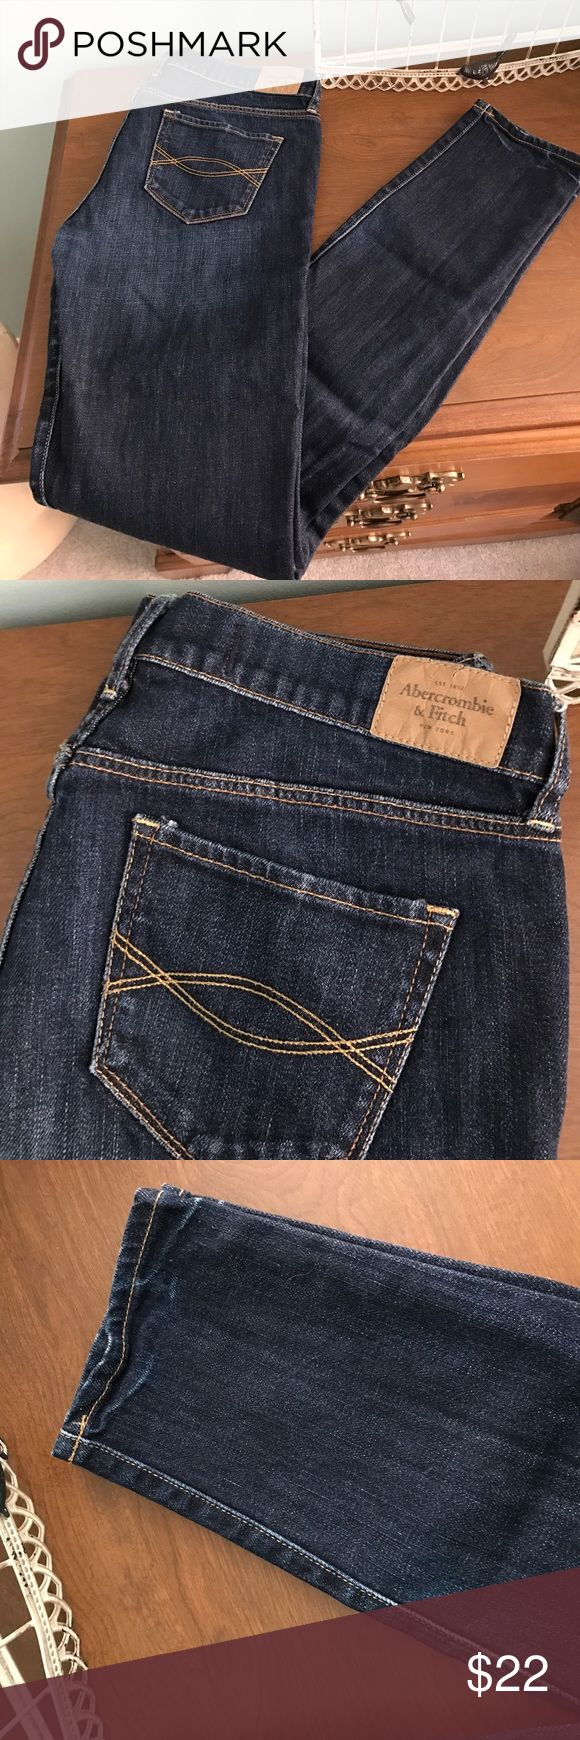 EUC A&F Brett super skinny jean Great condition, no fading. Minor cracking of leather tags and a few loose strings may be present can get cut off. Size 4L or 27x33. No modeling. Thanks Abercrombie & Fitch Jeans Skinny